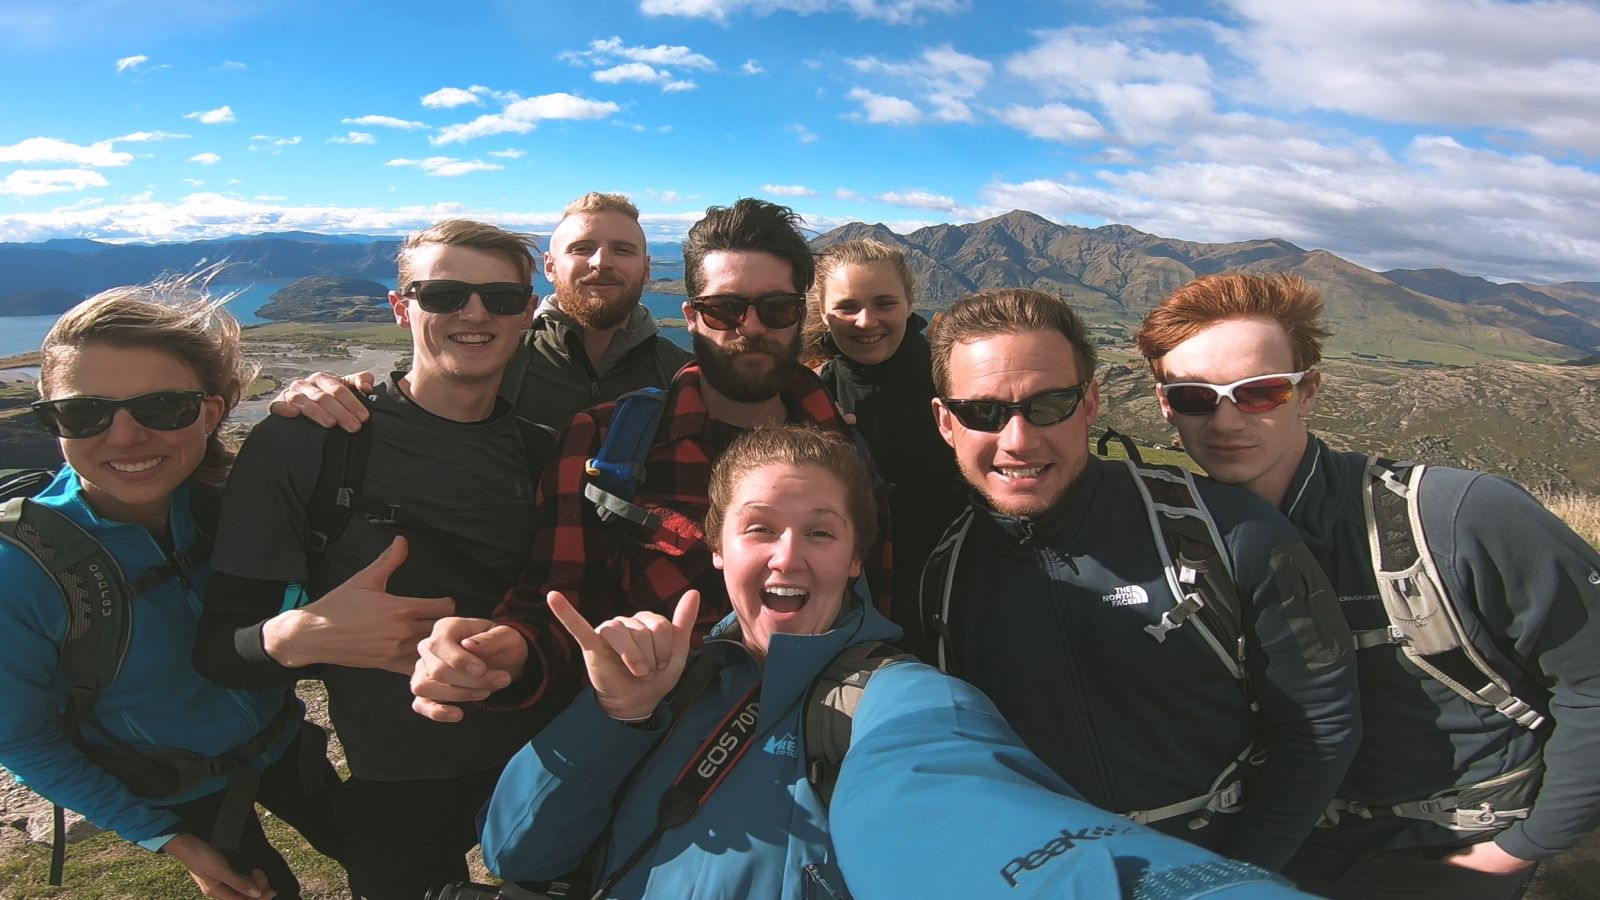 Comprehensive Outdoor Guide training course